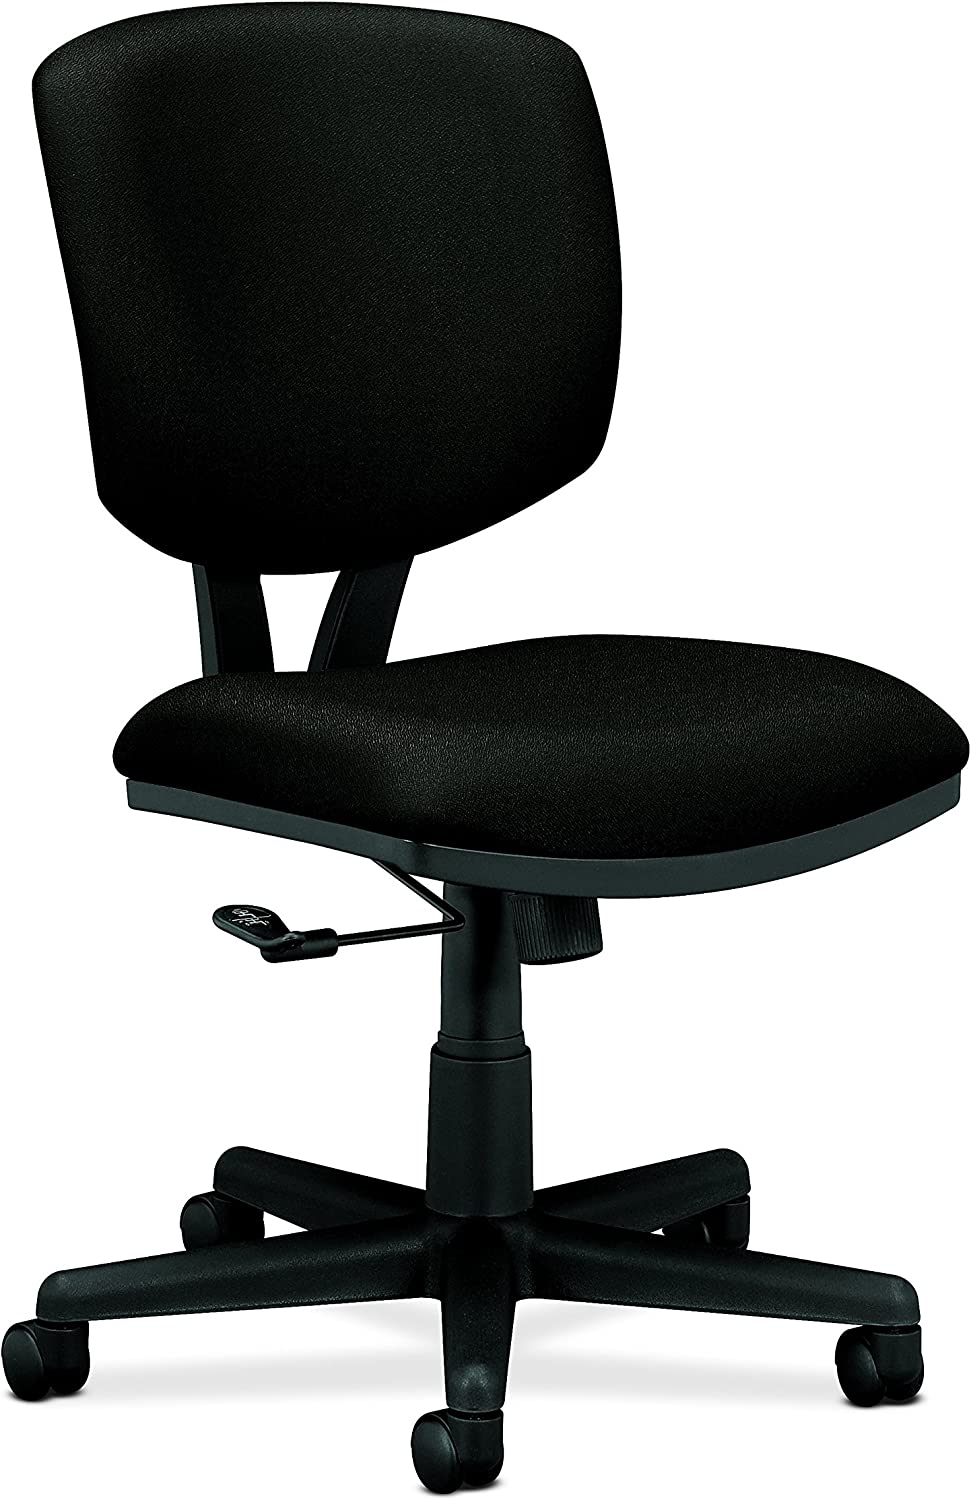 Hon Volt Task Chair – A durable, high-quality chair that's designed for comfort